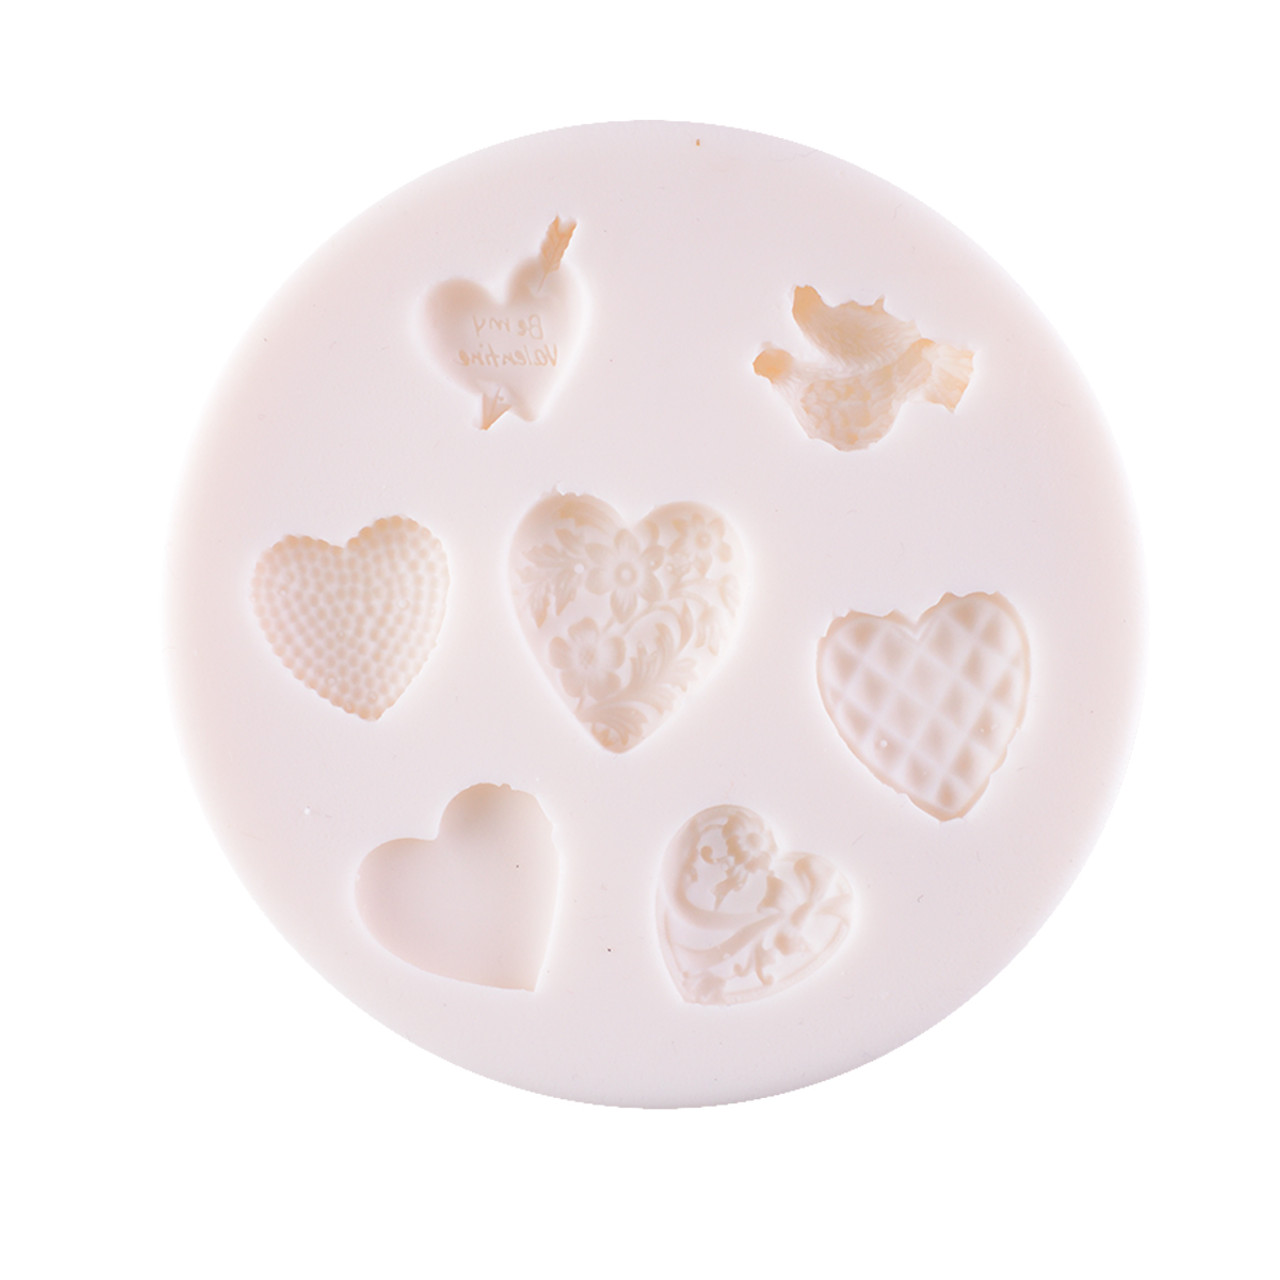 Silicone Mould - Bird & Heart 7 Kinds